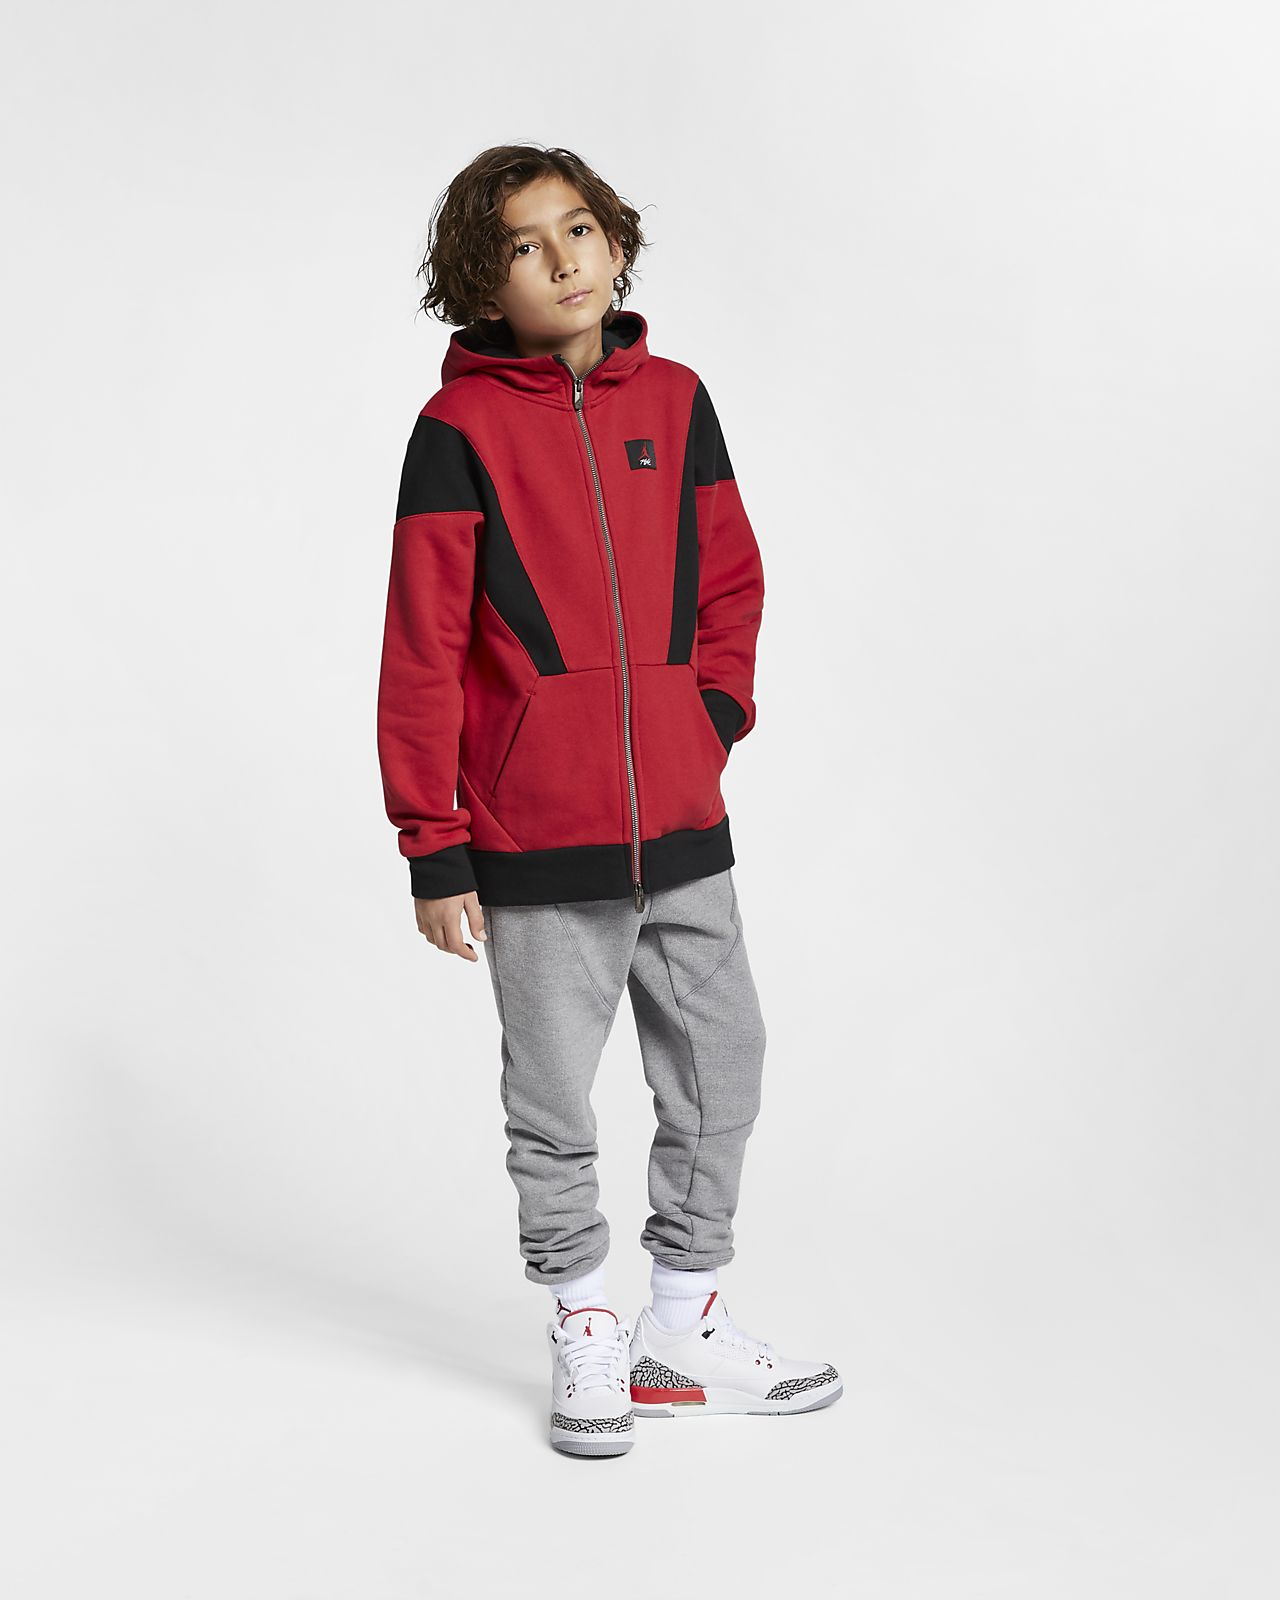 6fdb88ff9 Jordan Flight Lite Older Kids' (Boys') Full-Zip Hoodie. Nike.com GB